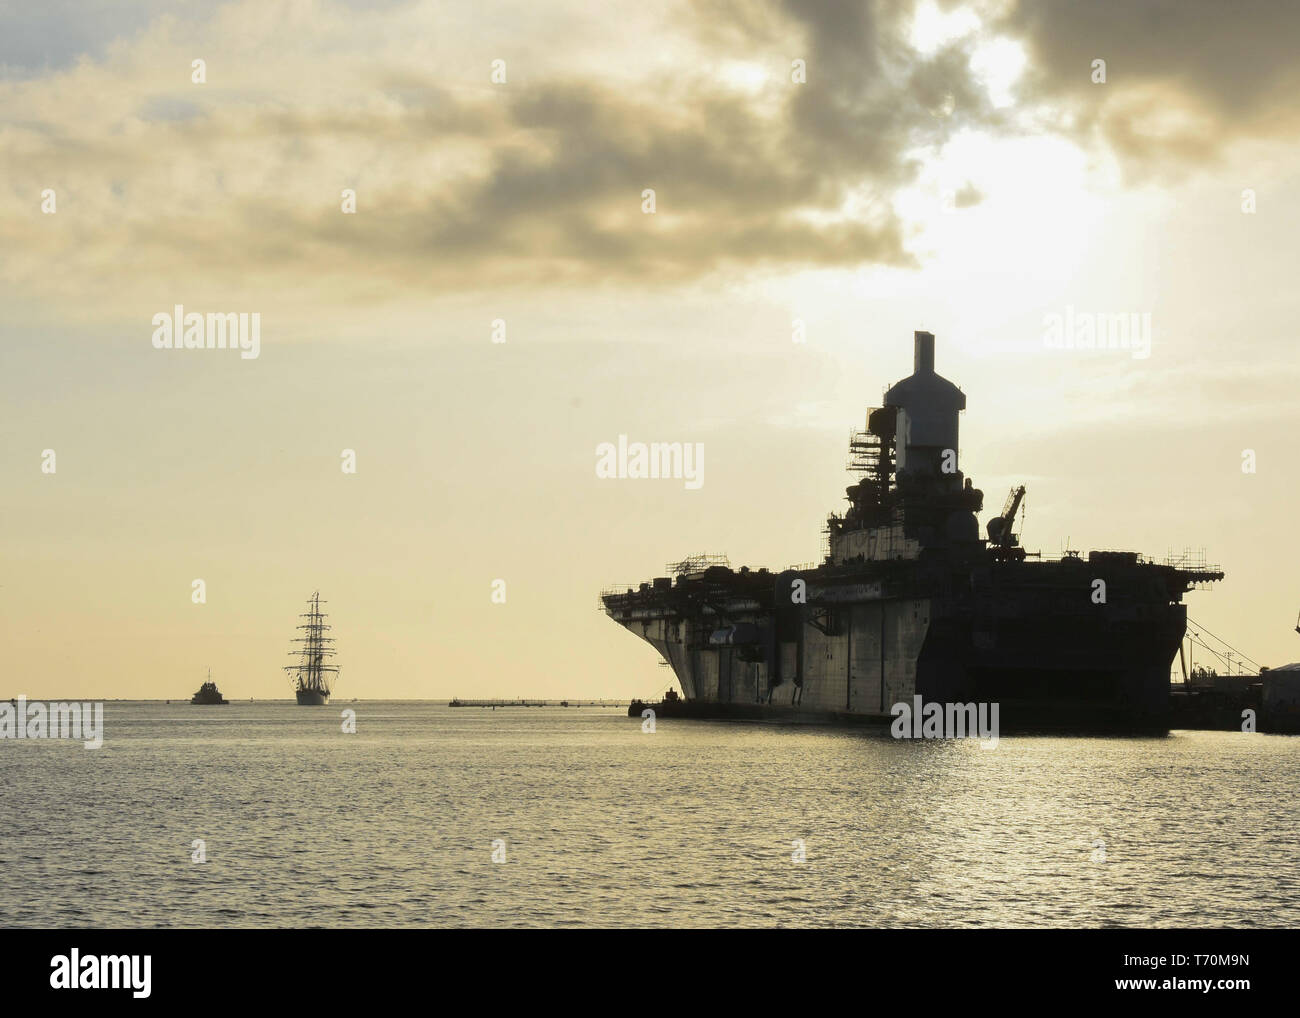 """190430-N-ED185-1011  MAYPORT, Fla. (April 30, 2019) The Brazilian navy tall ship Cisne Branco, left, appears on the horizon as it enters Naval Station (NAVSTA) Mayport. Cisne Branco, which means """"white swan,"""" is a sail training tall ship operated by the Brazilian navy. Cisne Branco is visiting NAVSTA Mayport for a port visit as part of the ship's EUROPA 2019 tour. (U.S. Navy photo by Mass Communication Specialist 1st Class Brian G. Reynolds/Released) - Stock Image"""